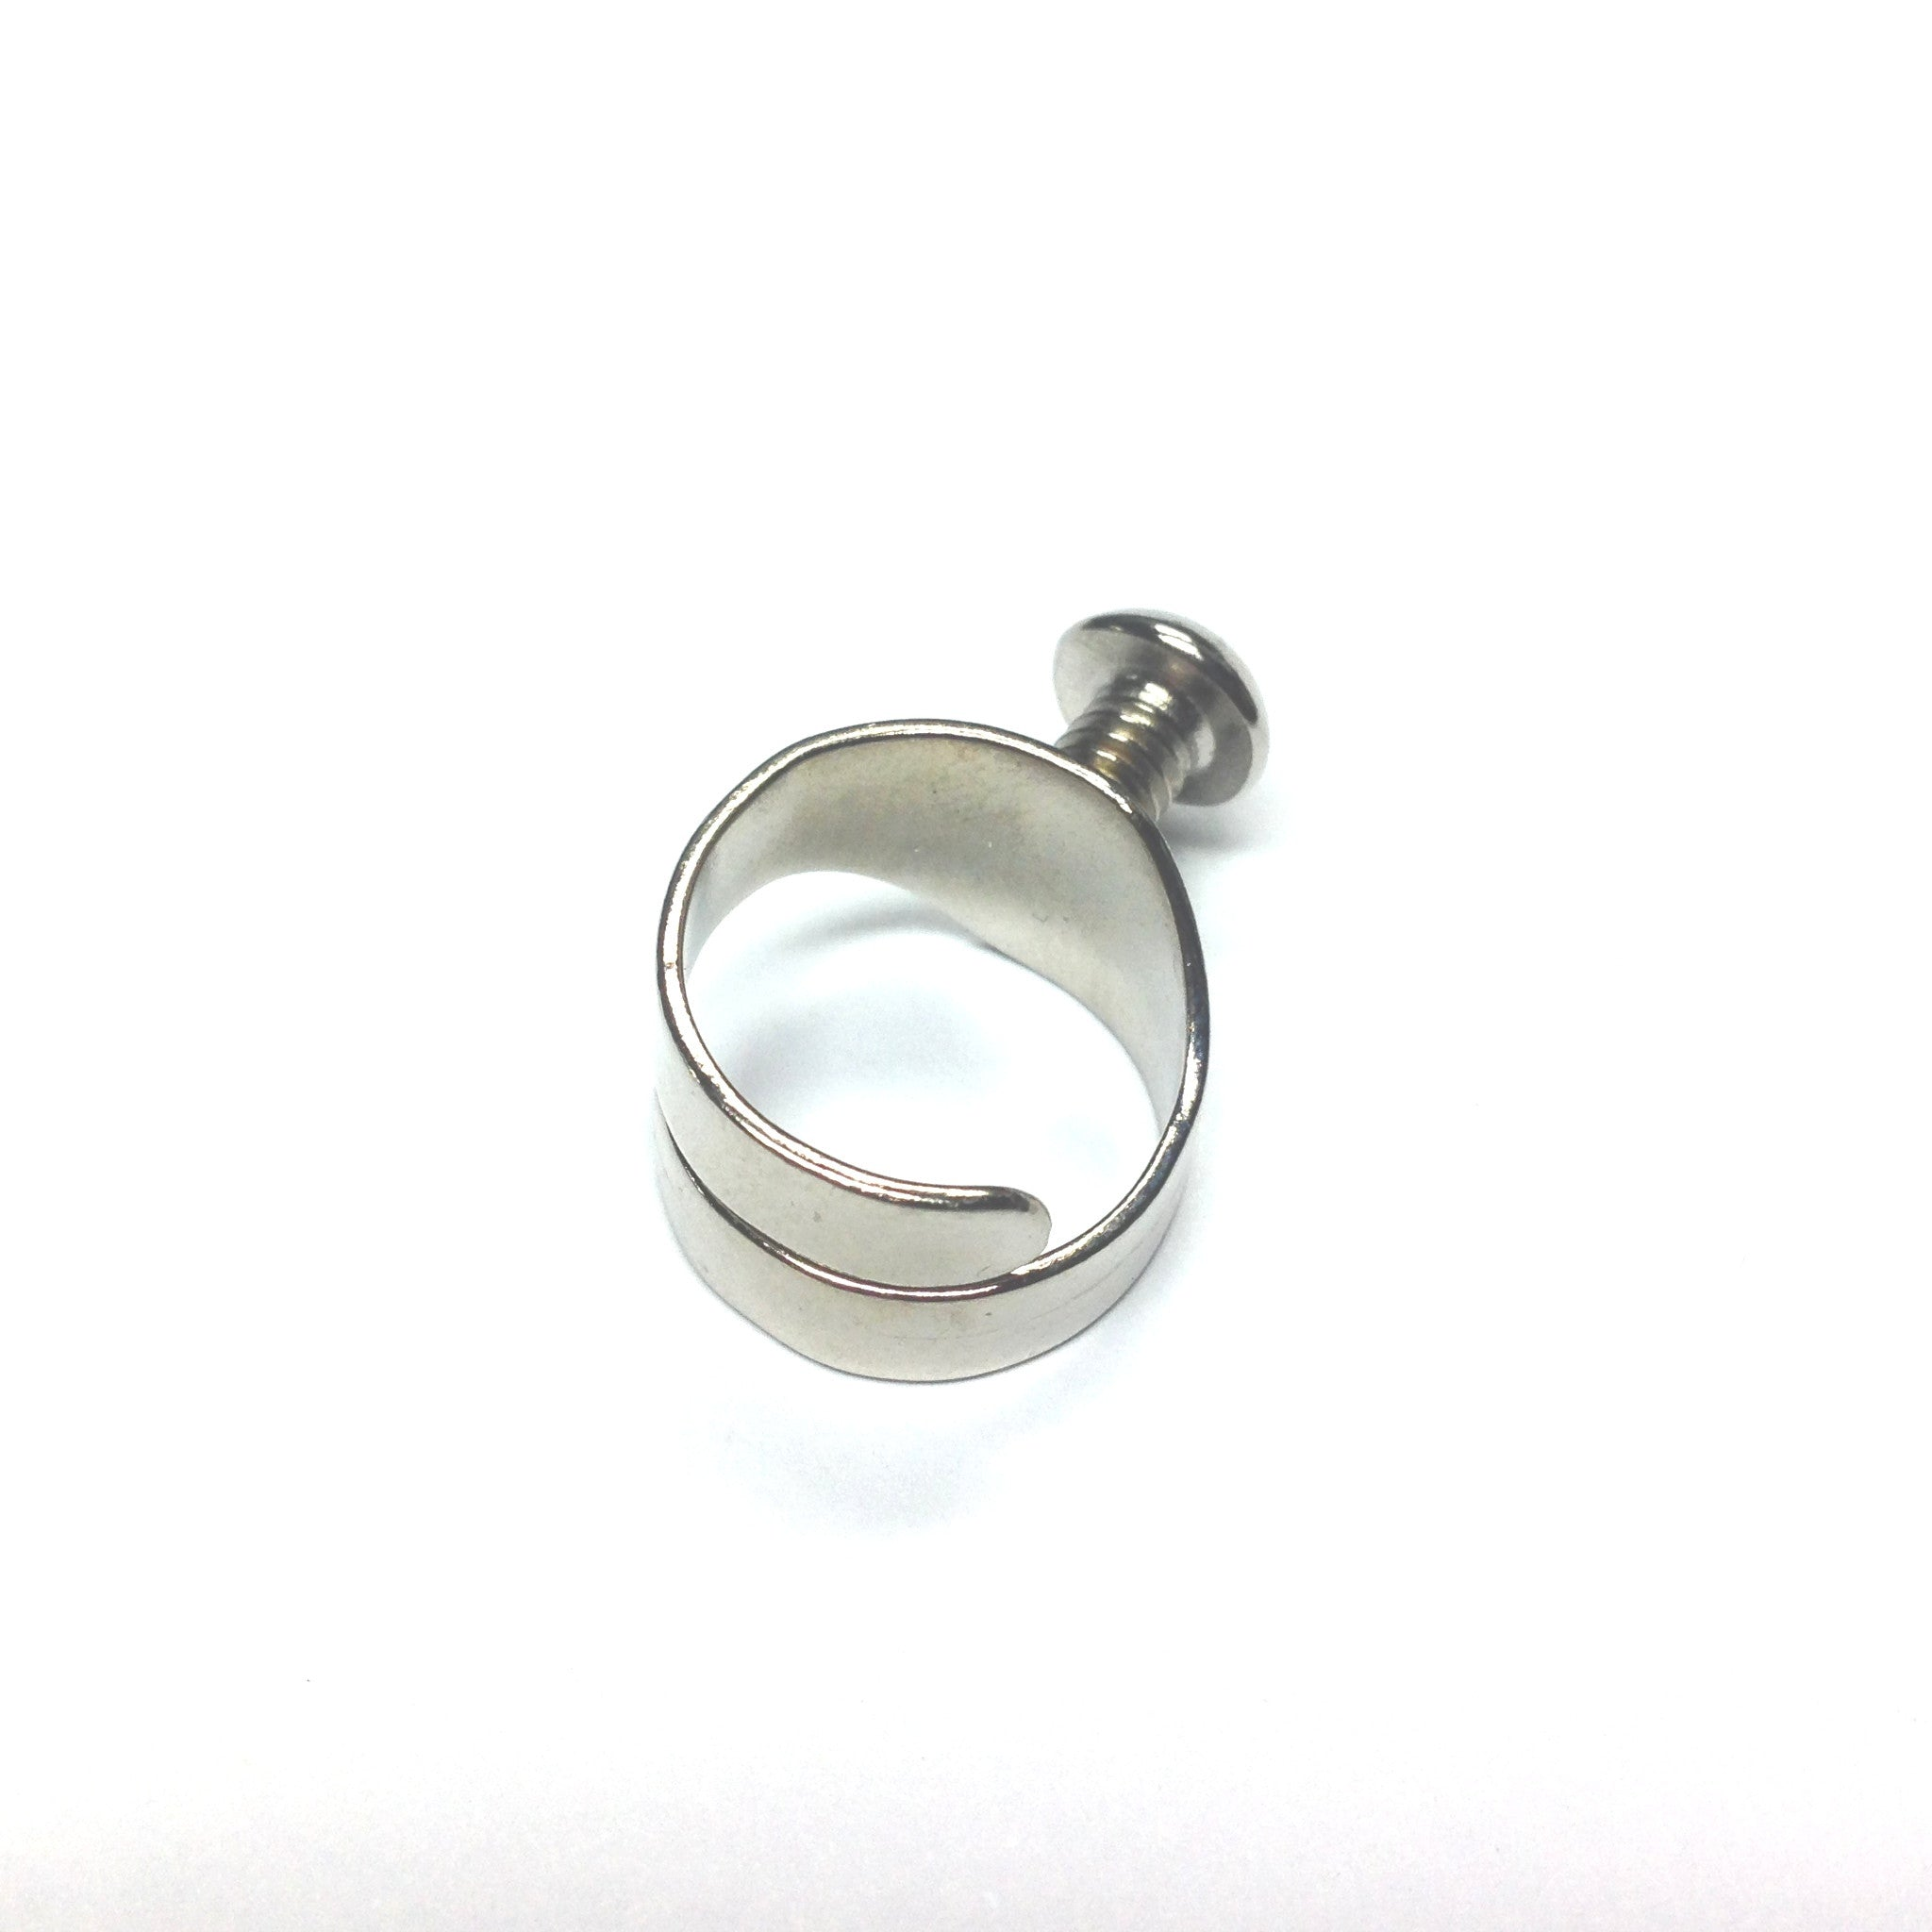 25 Matte Black Plated Open Round Jump Rings 8mm